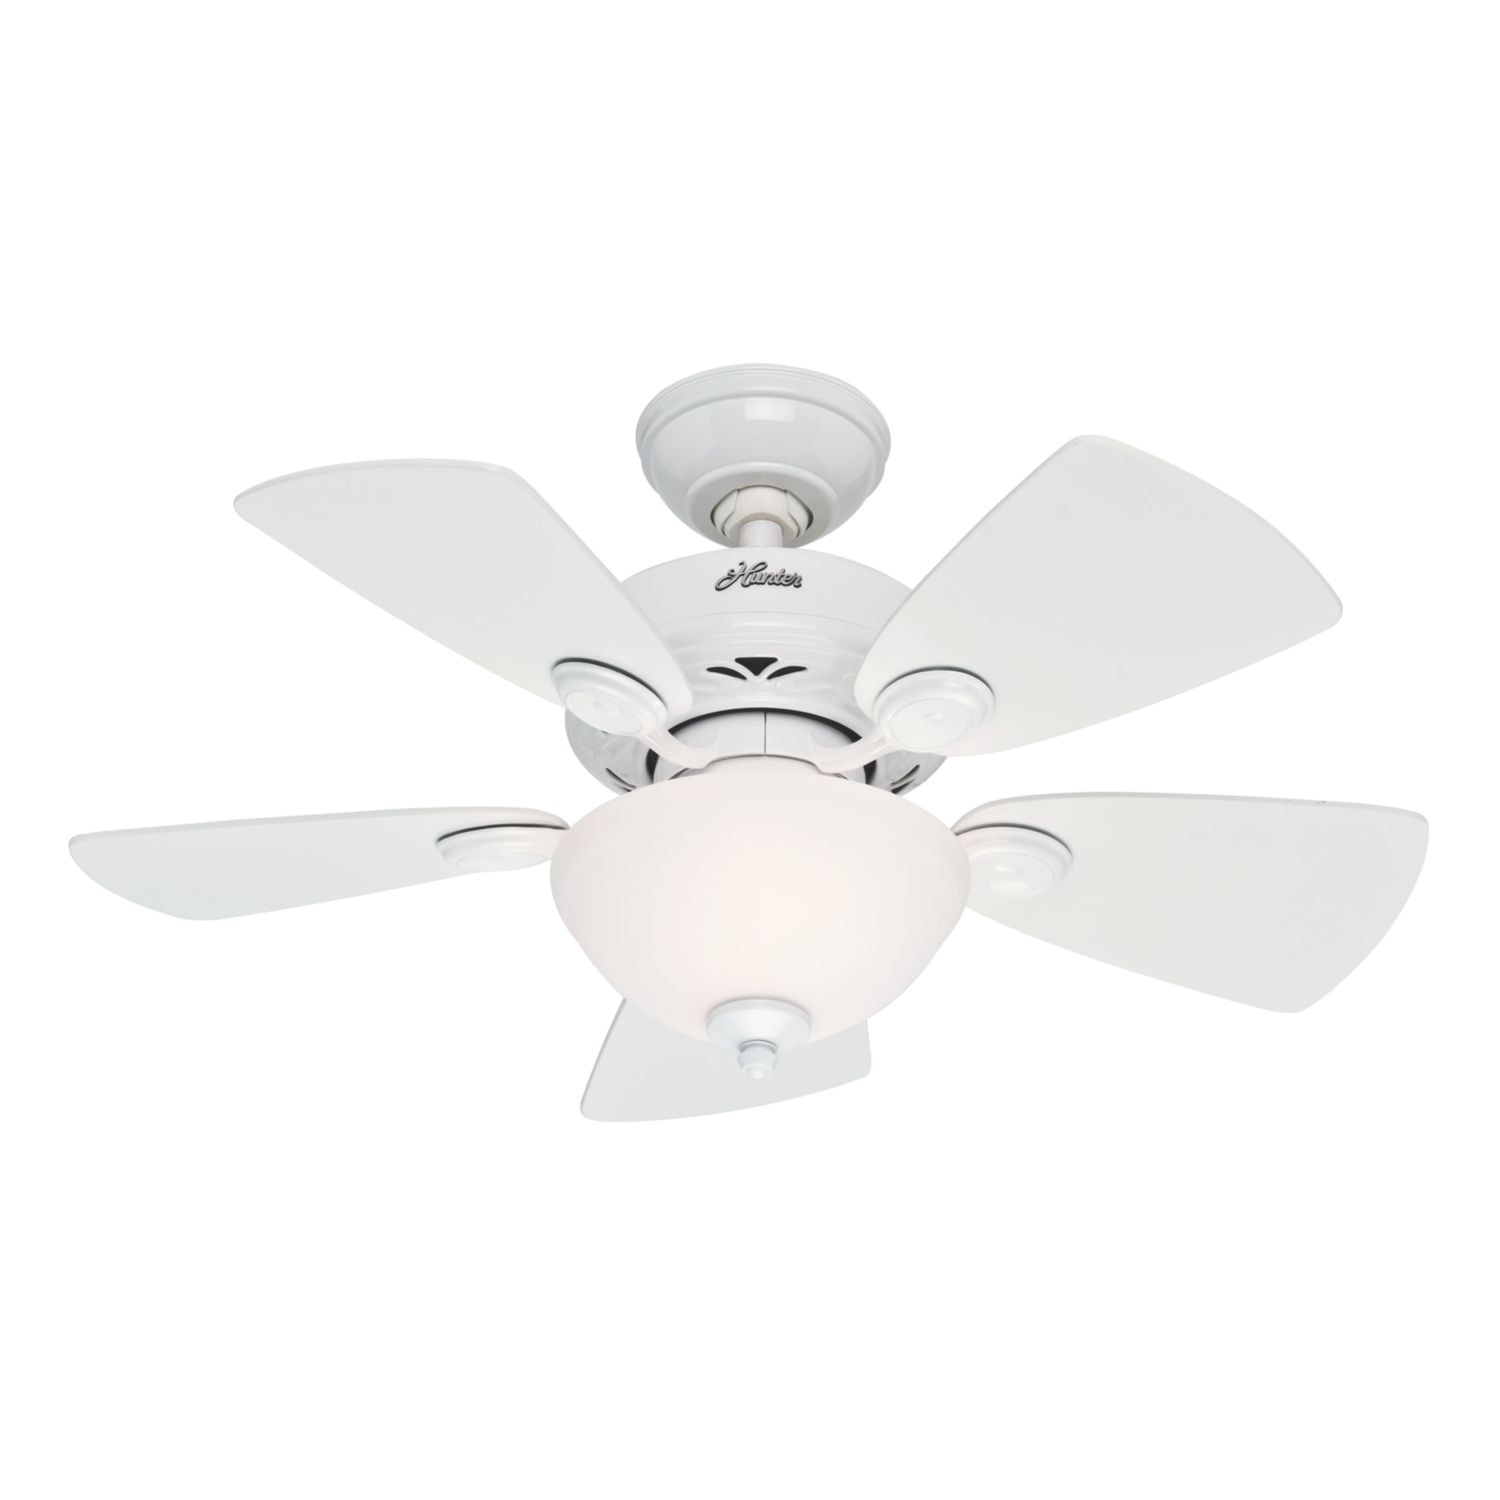 34ceiling fan with light